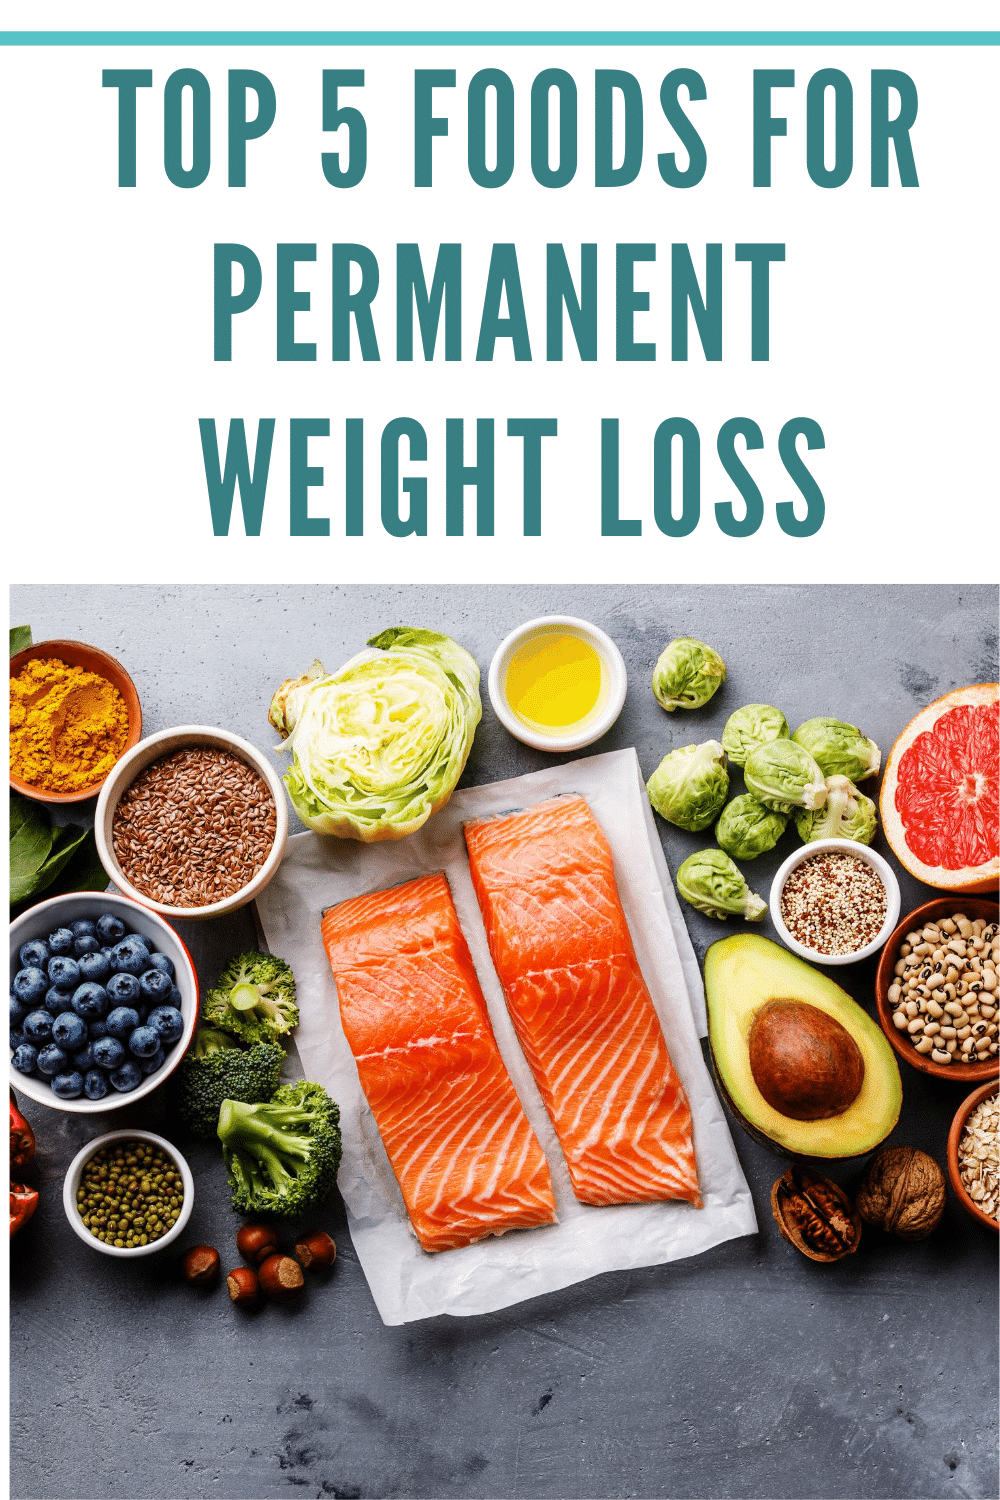 Best 5 Foods For Permanent Weight Loss